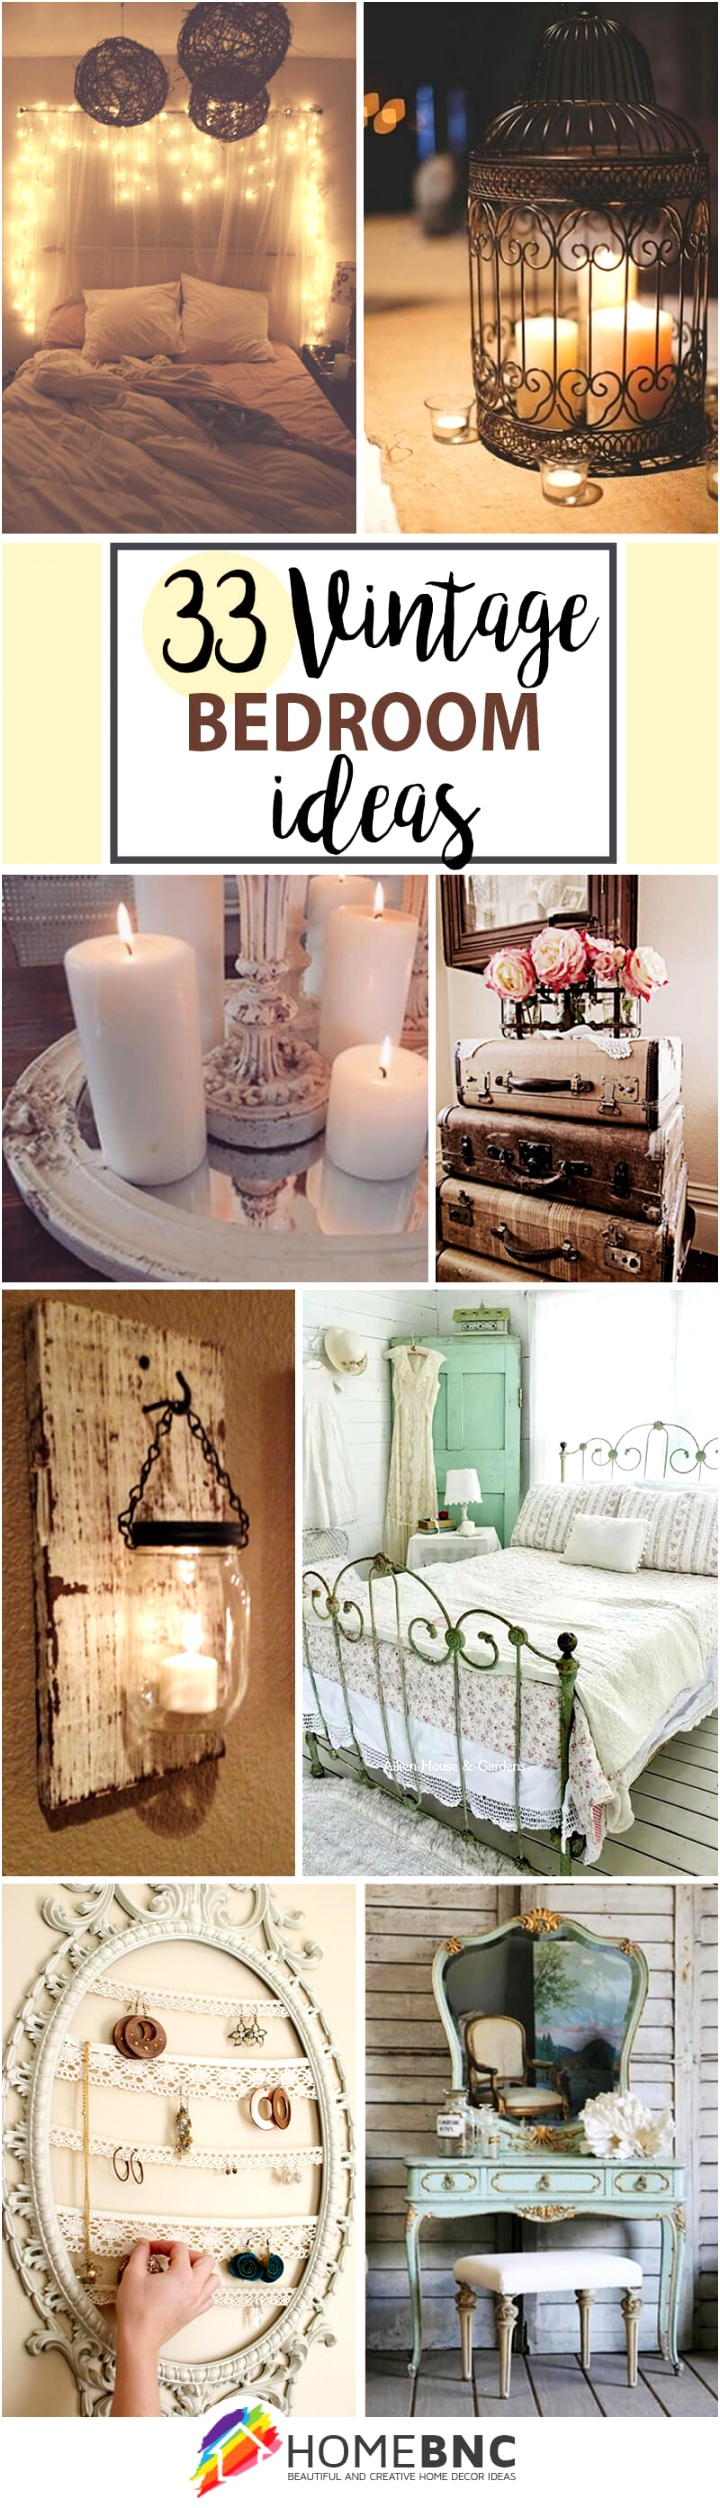 vintage bedroom decor ideas pinterest share homebnc